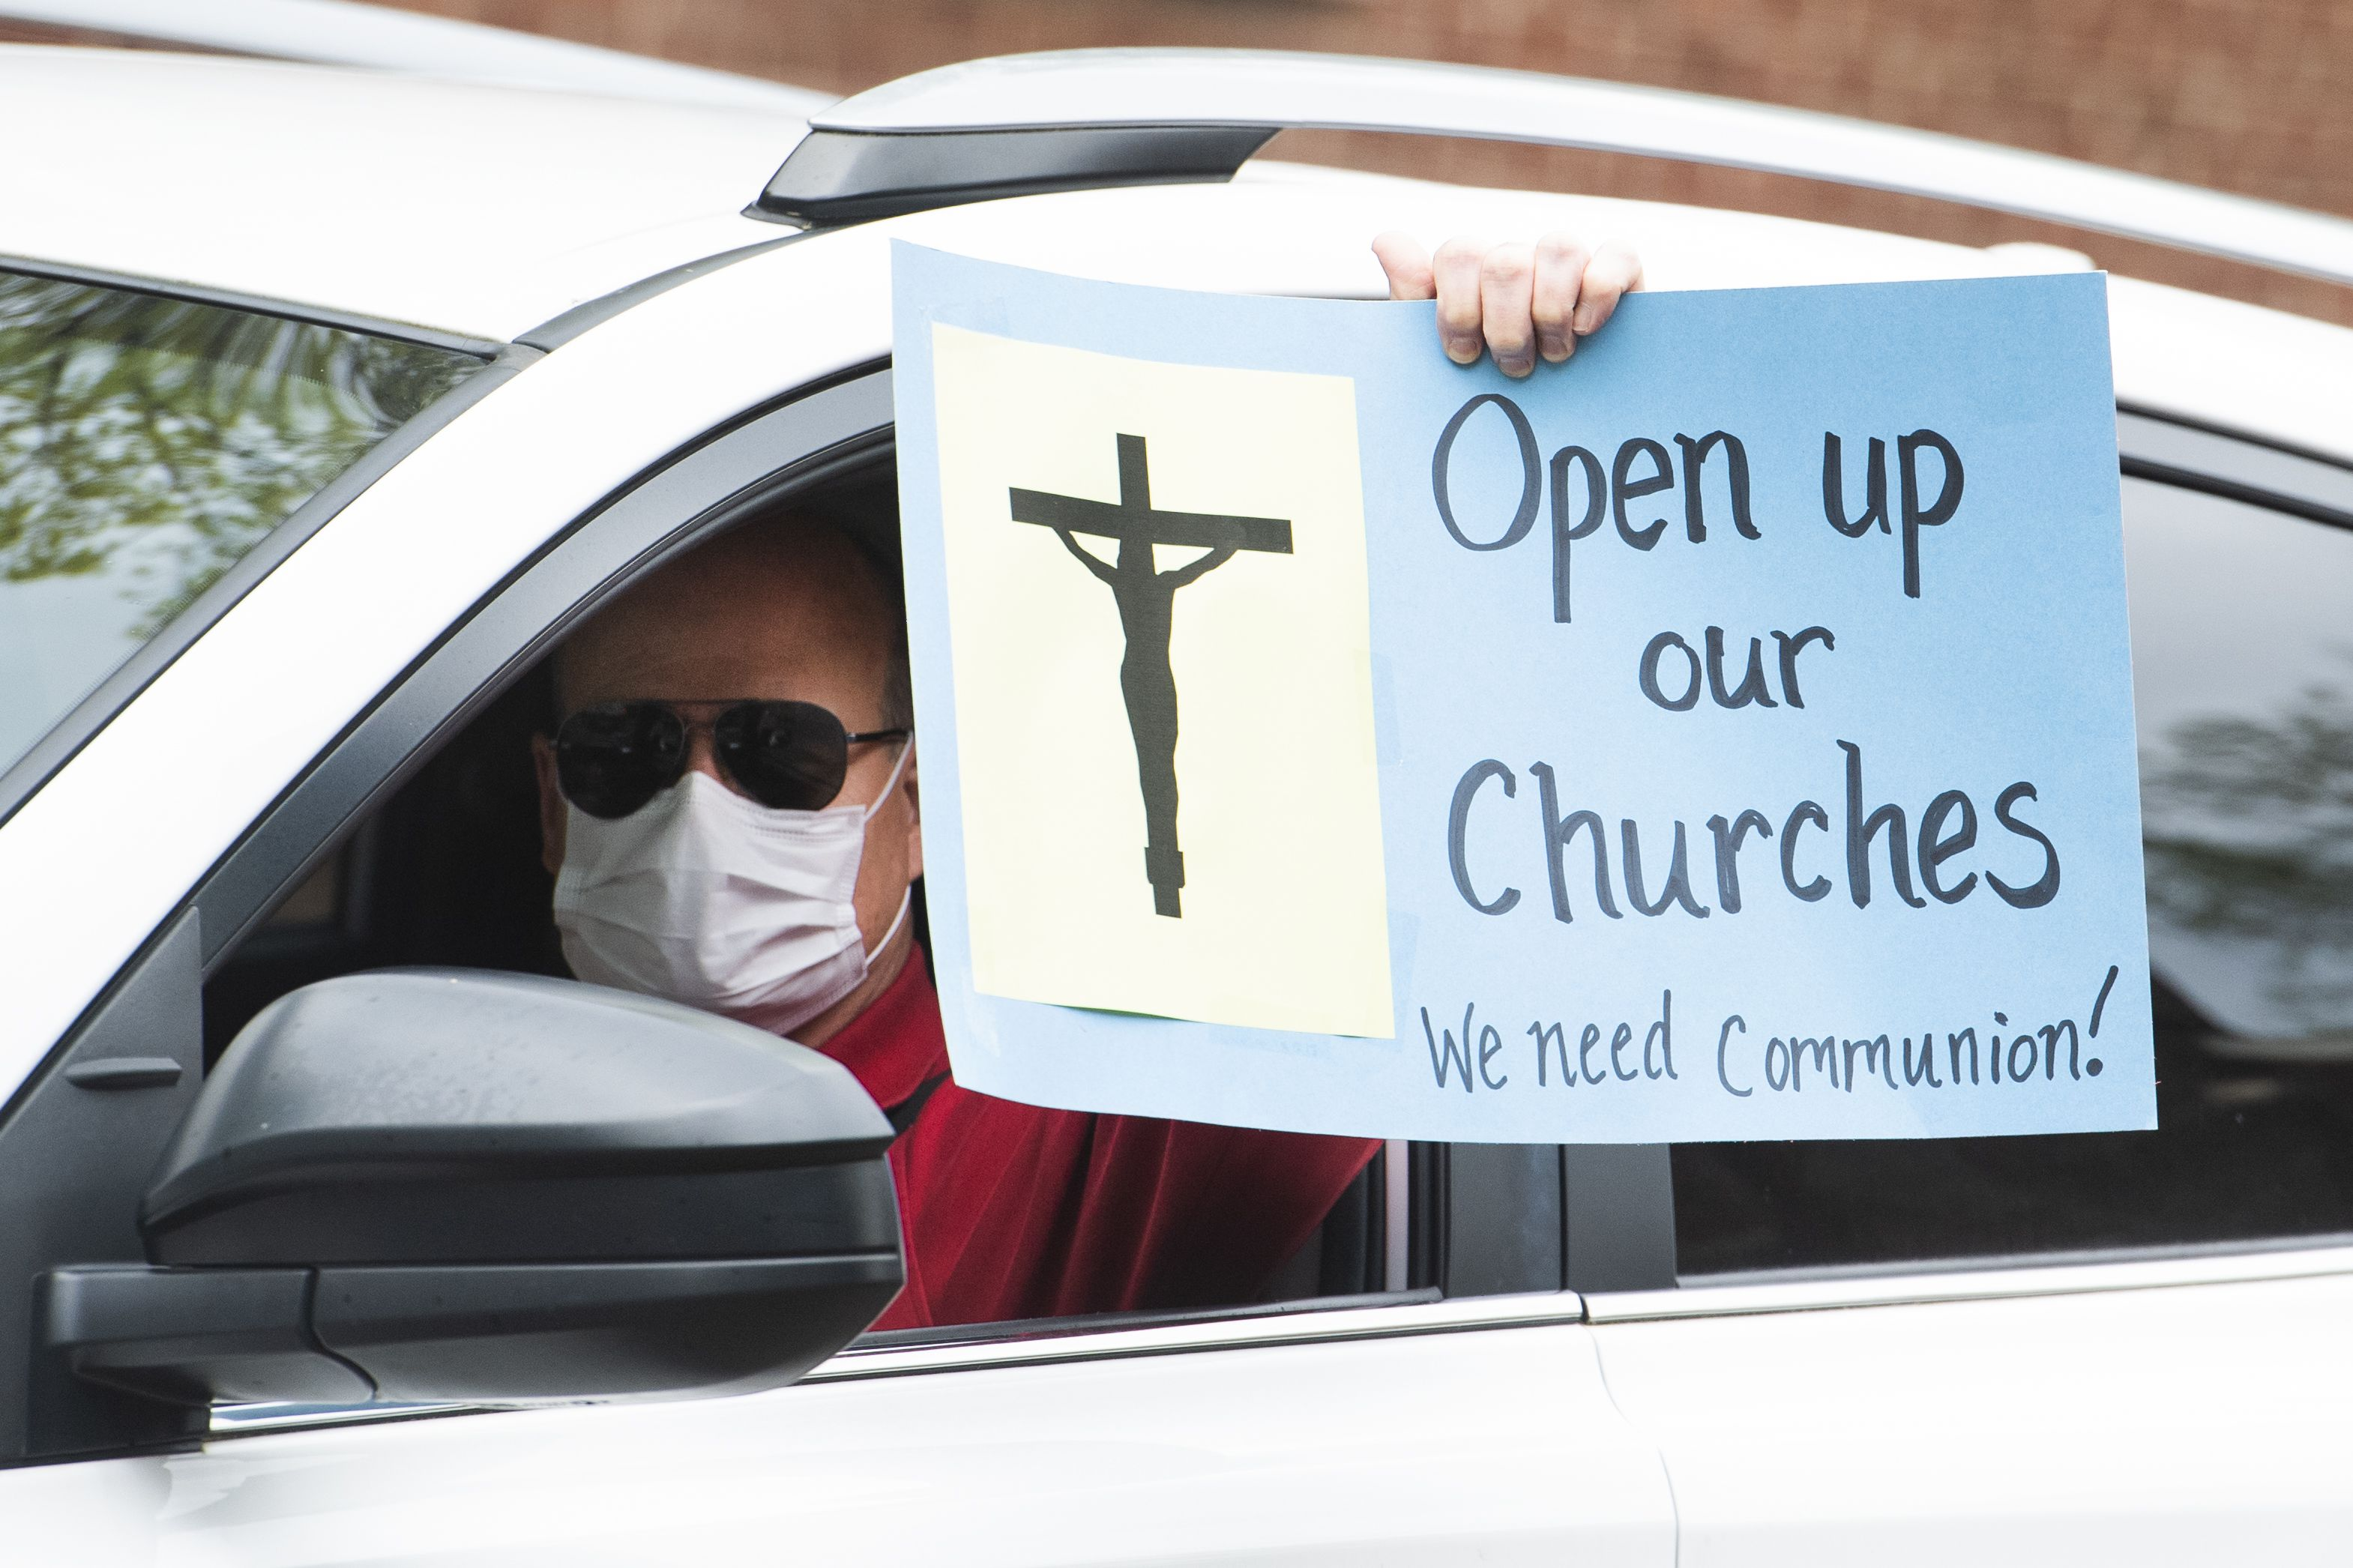 CDC: 38% of the attendees at an Arkansas church over a week contracted coronavirus